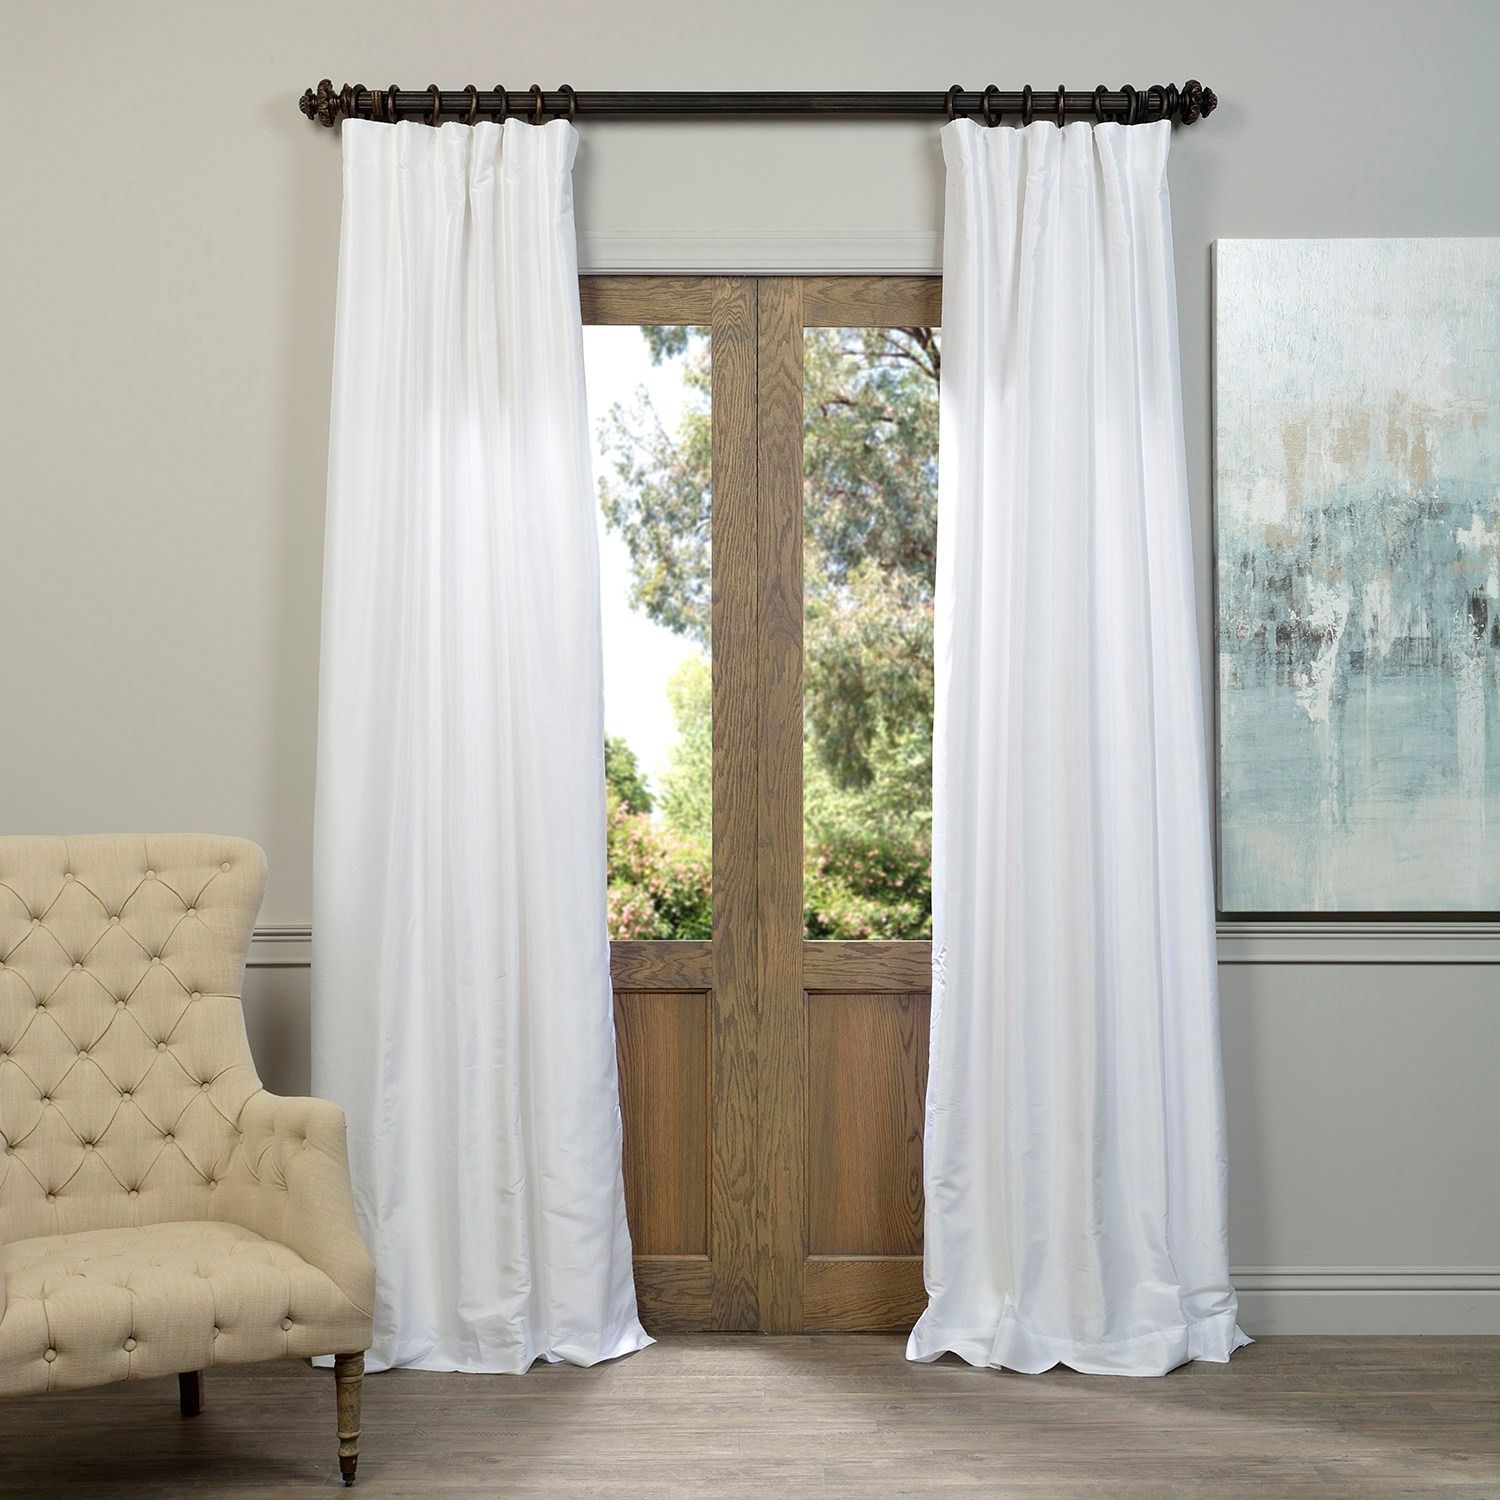 Curtain pair overstock shopping great deals on lights out curtains - Faux Silk Candy Stripe Curtains Luxurious Condo Living Pinterest Candy Stripes Striped Curtains And Condo Living